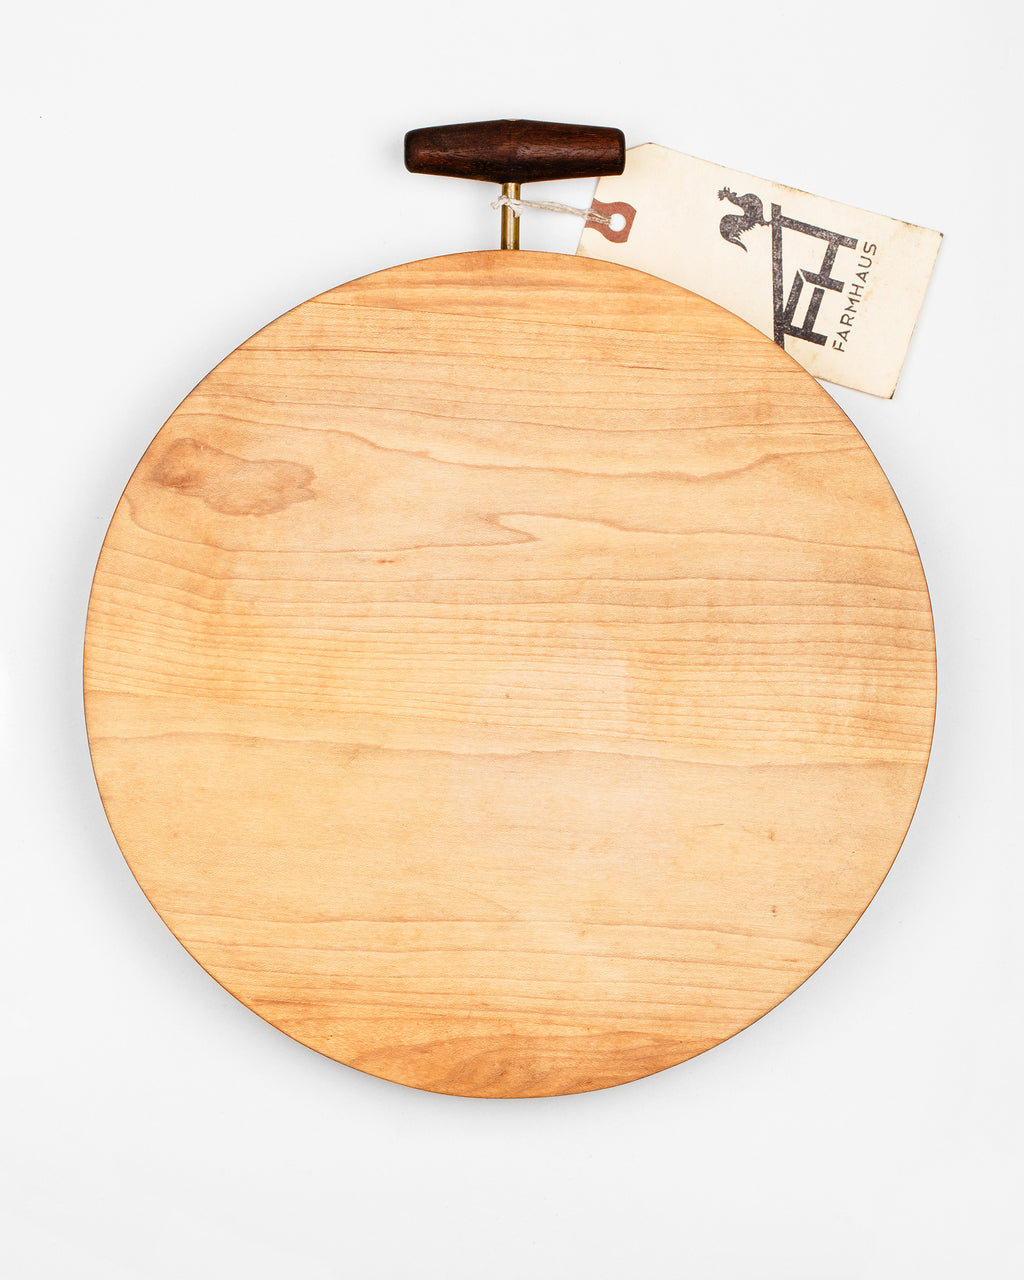 Farmhaus - Pocket Watch Serving Board